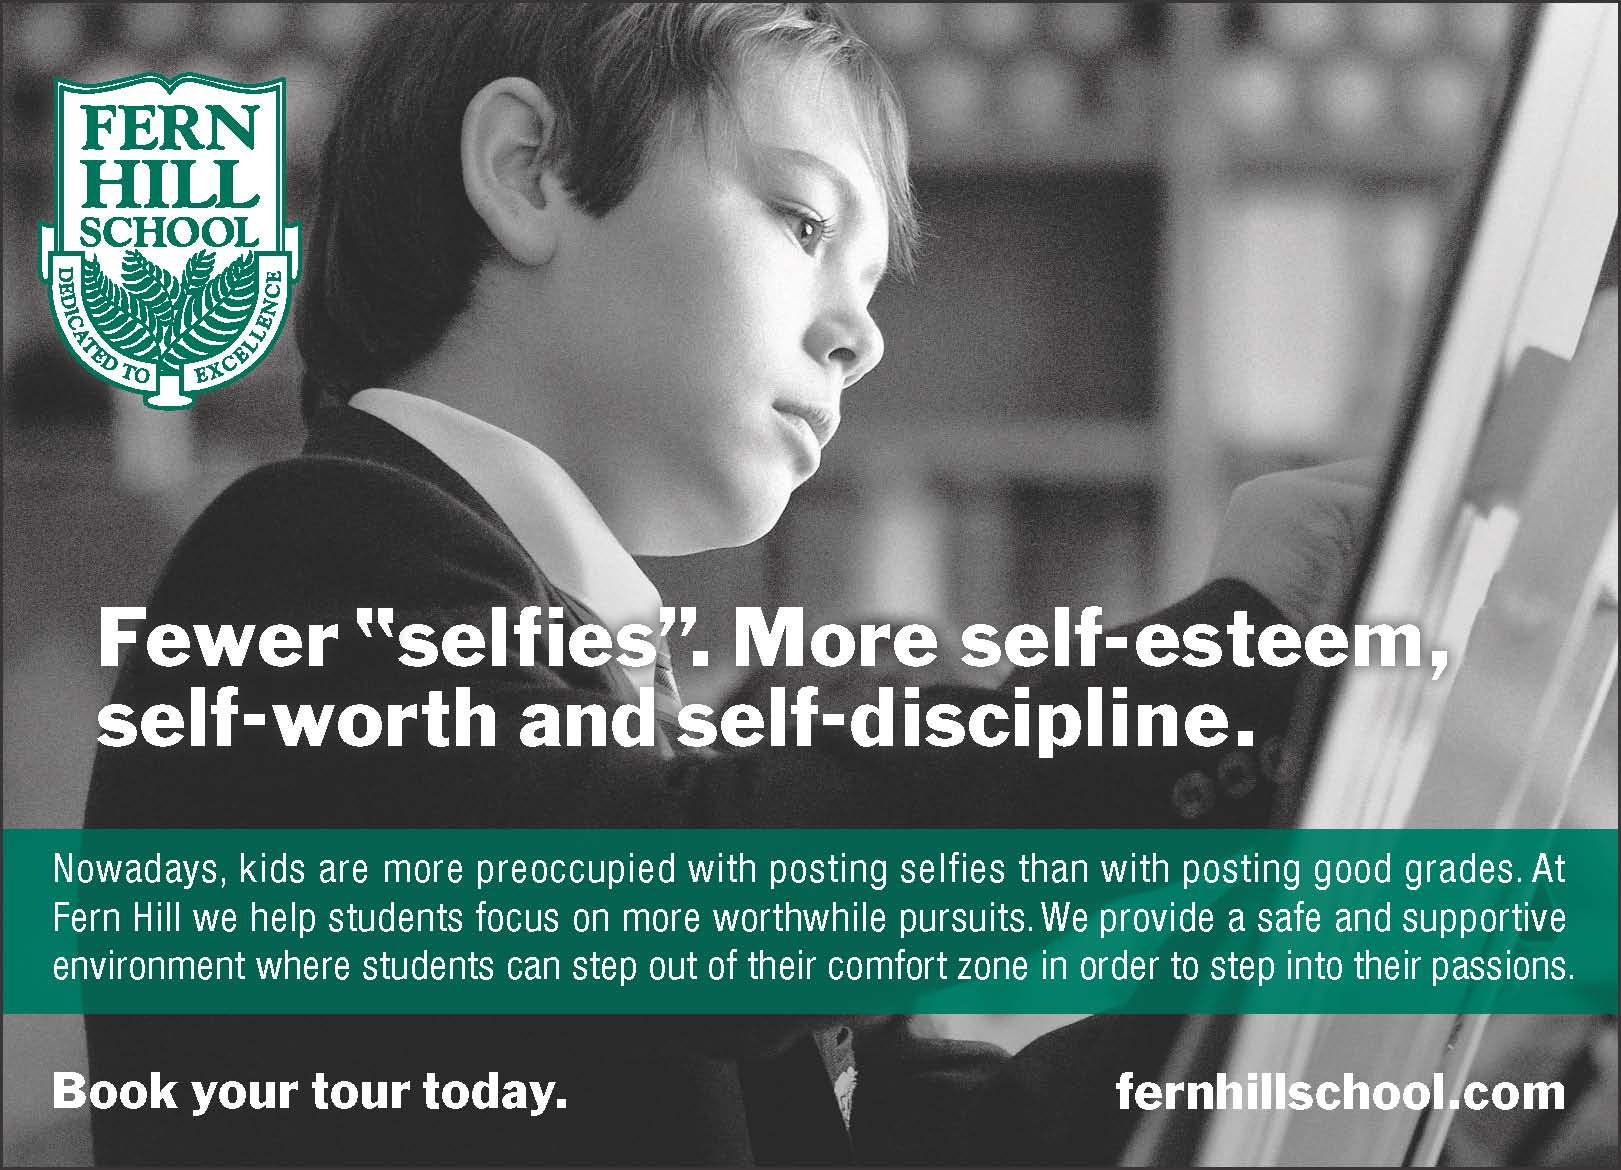 Fern Hill _Fewer selfies_ ad.jpg